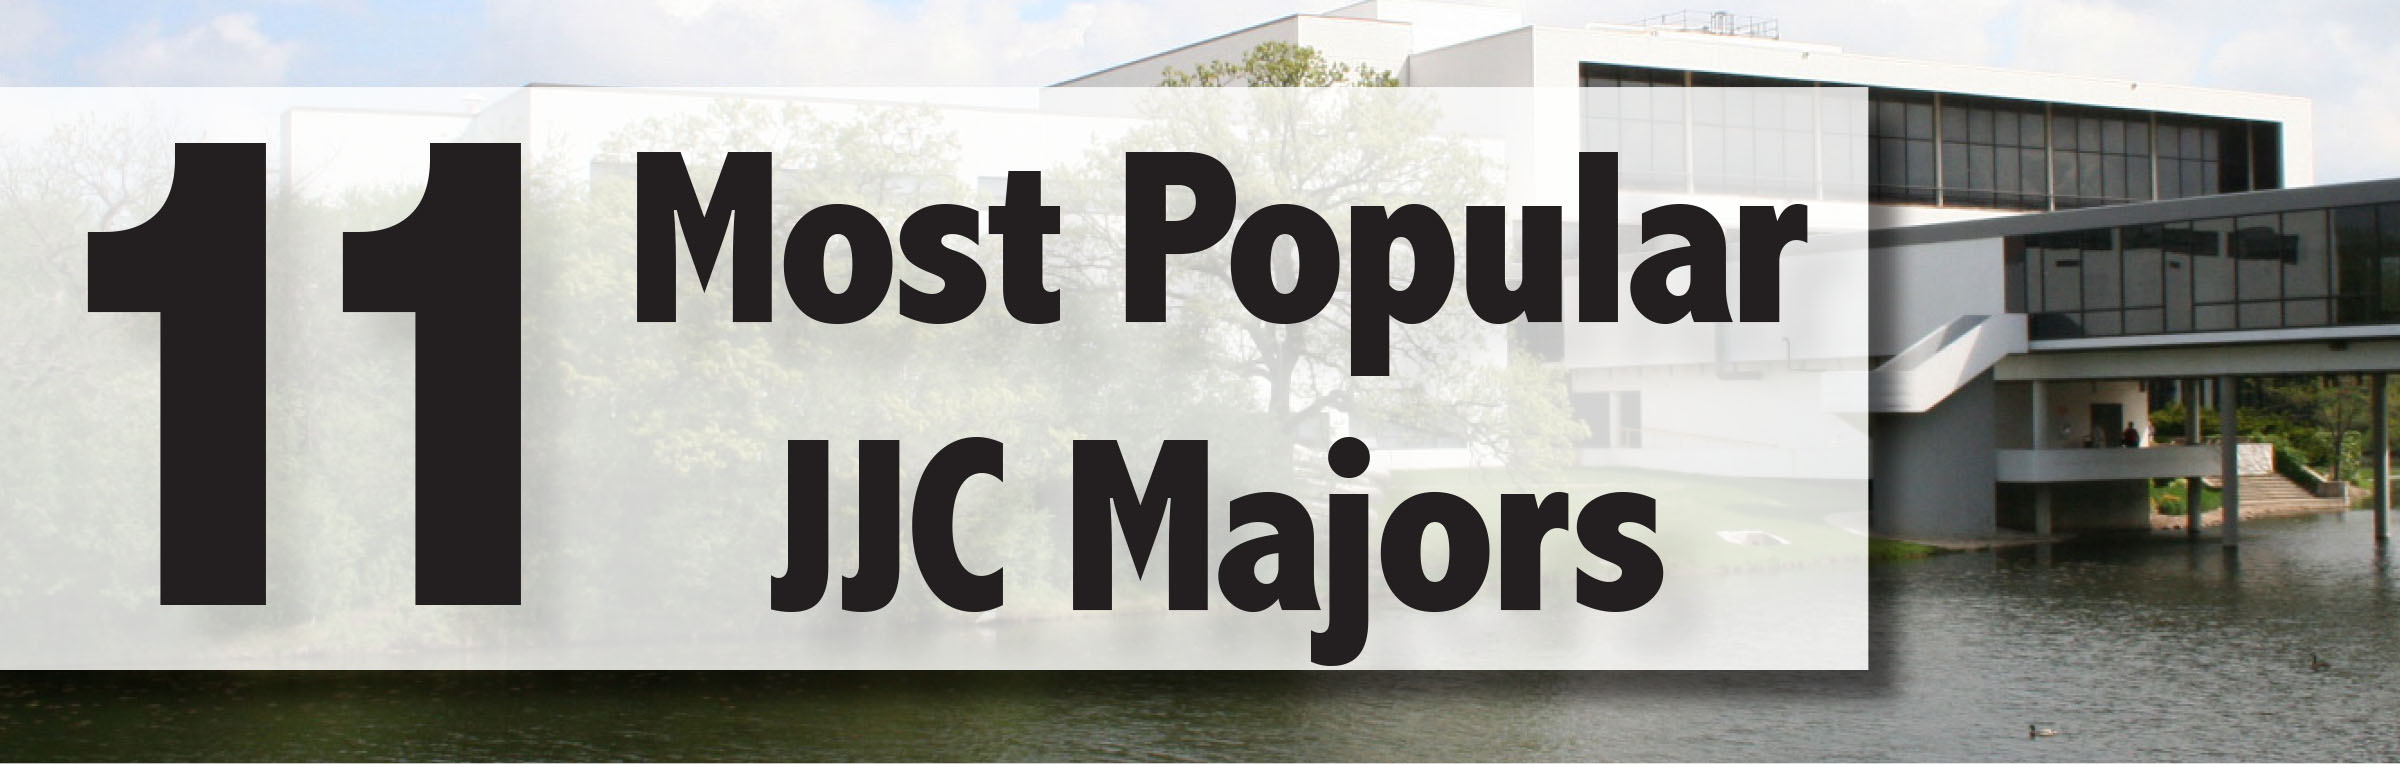 11 most popular jjc majors joliet junior college